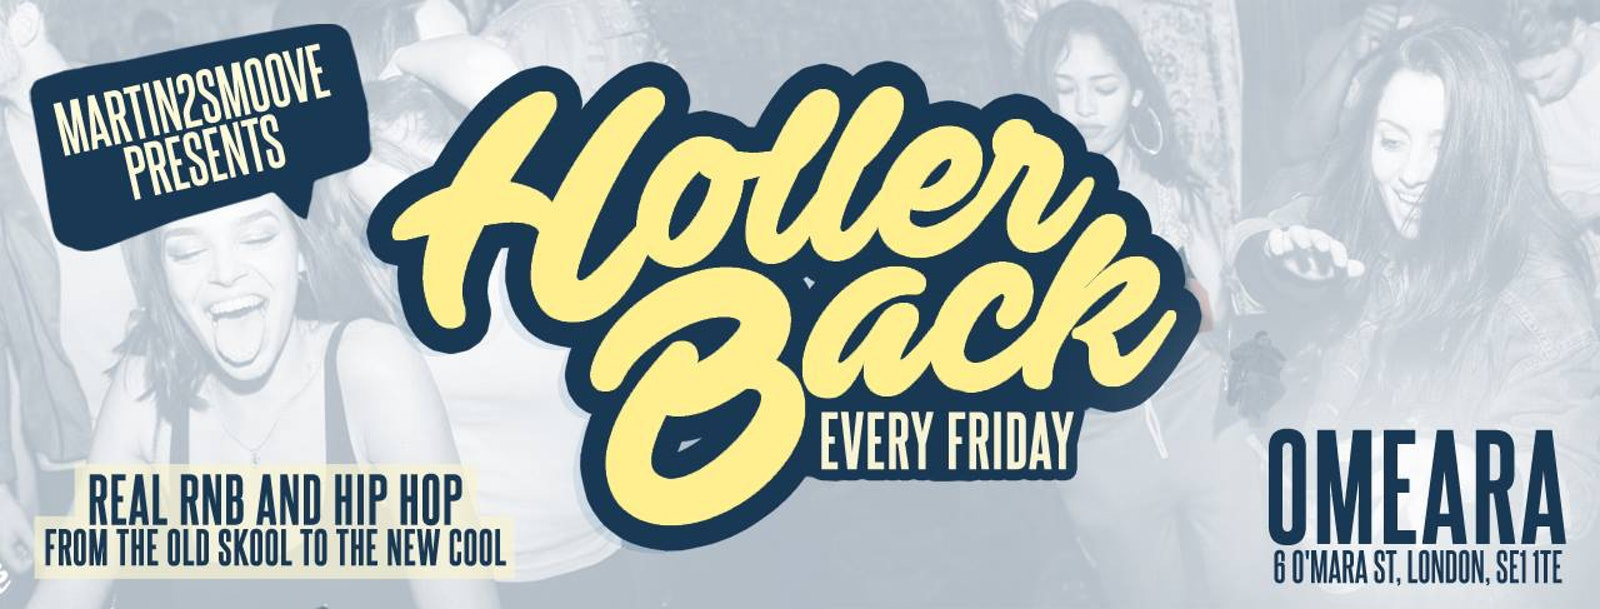 Holler Back – HipHop n R&B at Omeara London | Friday June 21st 2019